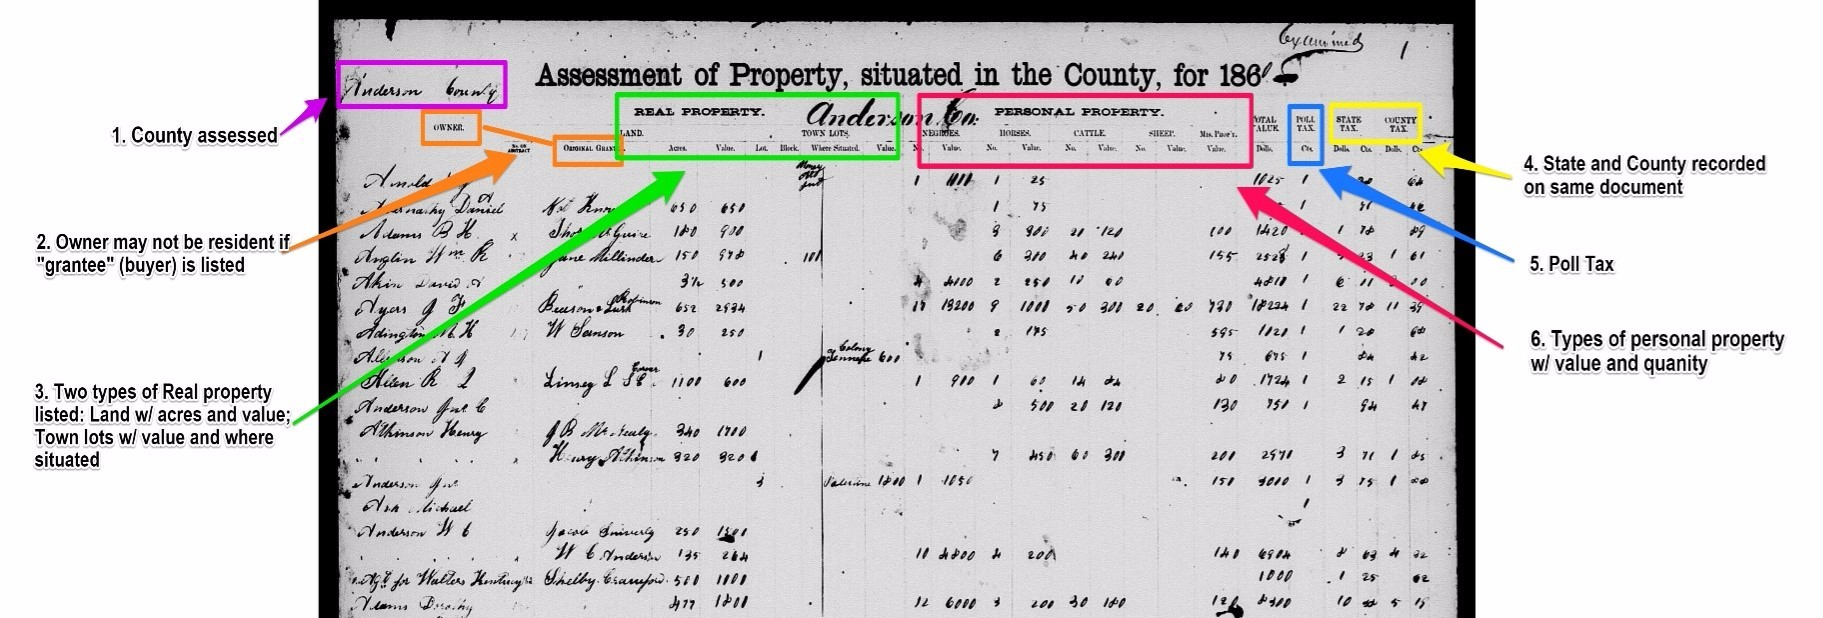 Free Genealogy Resources: How to use historical tax records for family history research, property tax assessment list for Anderson County, TX 1890